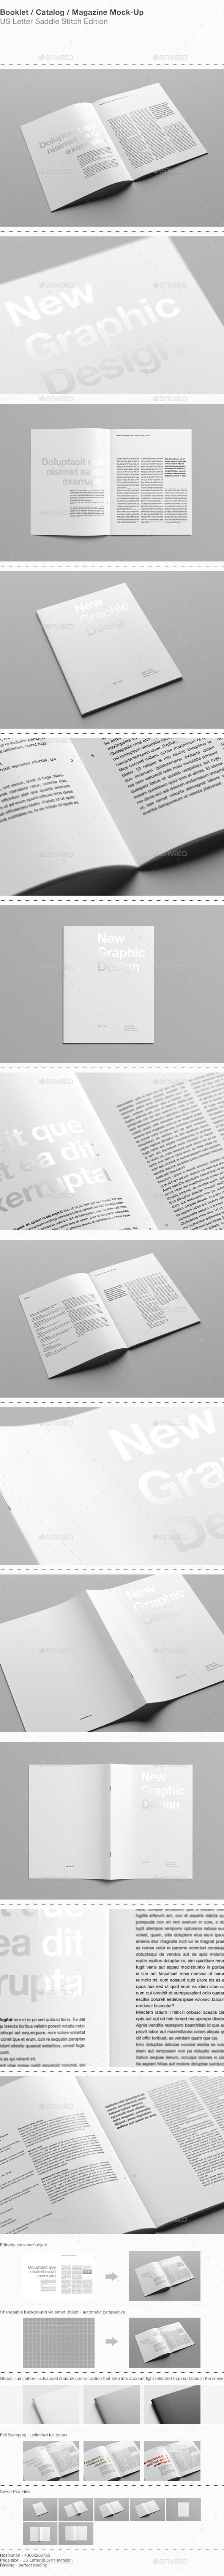 US Letter Portrait Catalog / Magazine Mock-Up - Magazines Print